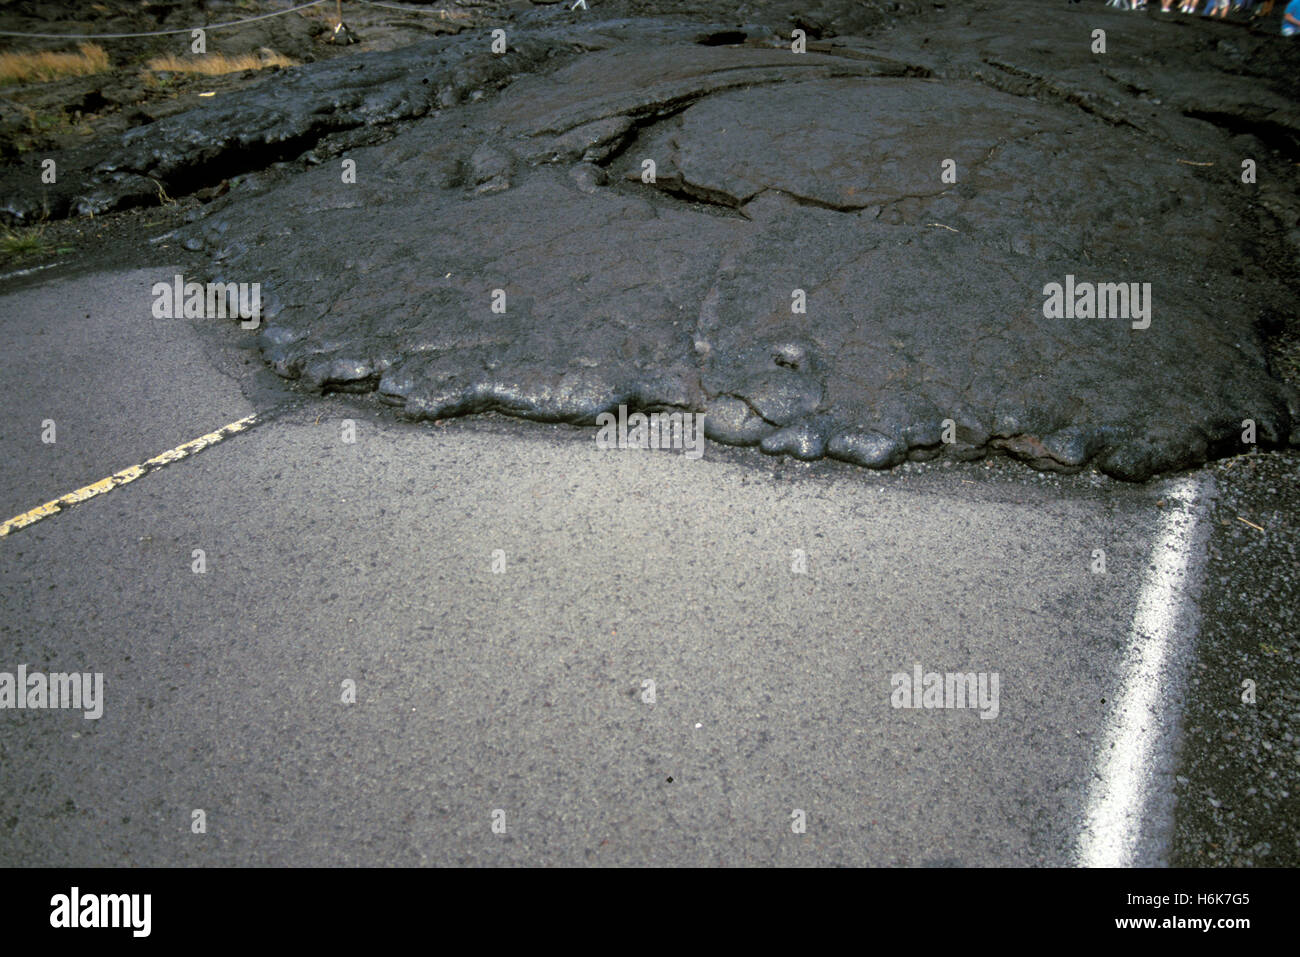 Lava from Mauna Loa volcano covers a road in Volcanoes National Park, Hawaii, Hawaii, United States - Stock Image